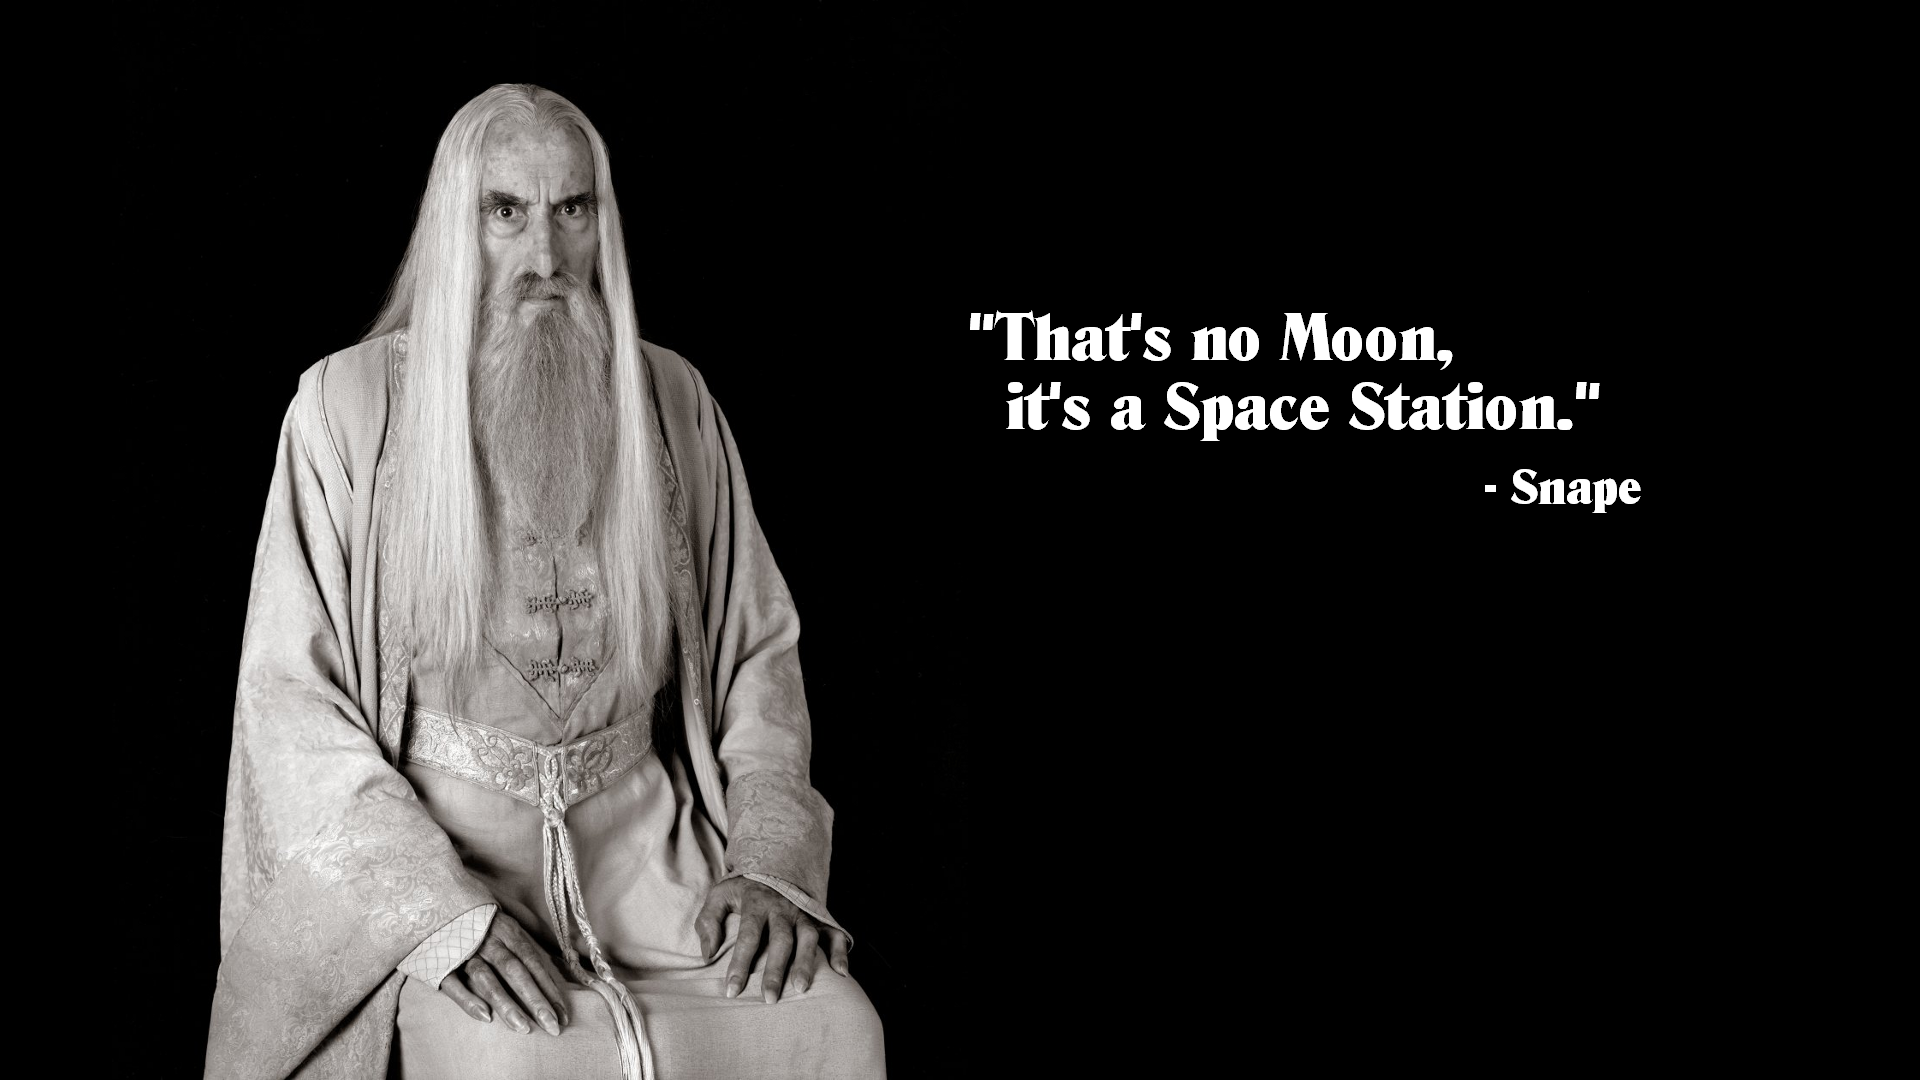 Quotes Harry Potter Saruman Star Wars Lord Rings Black Funny 1920x1080